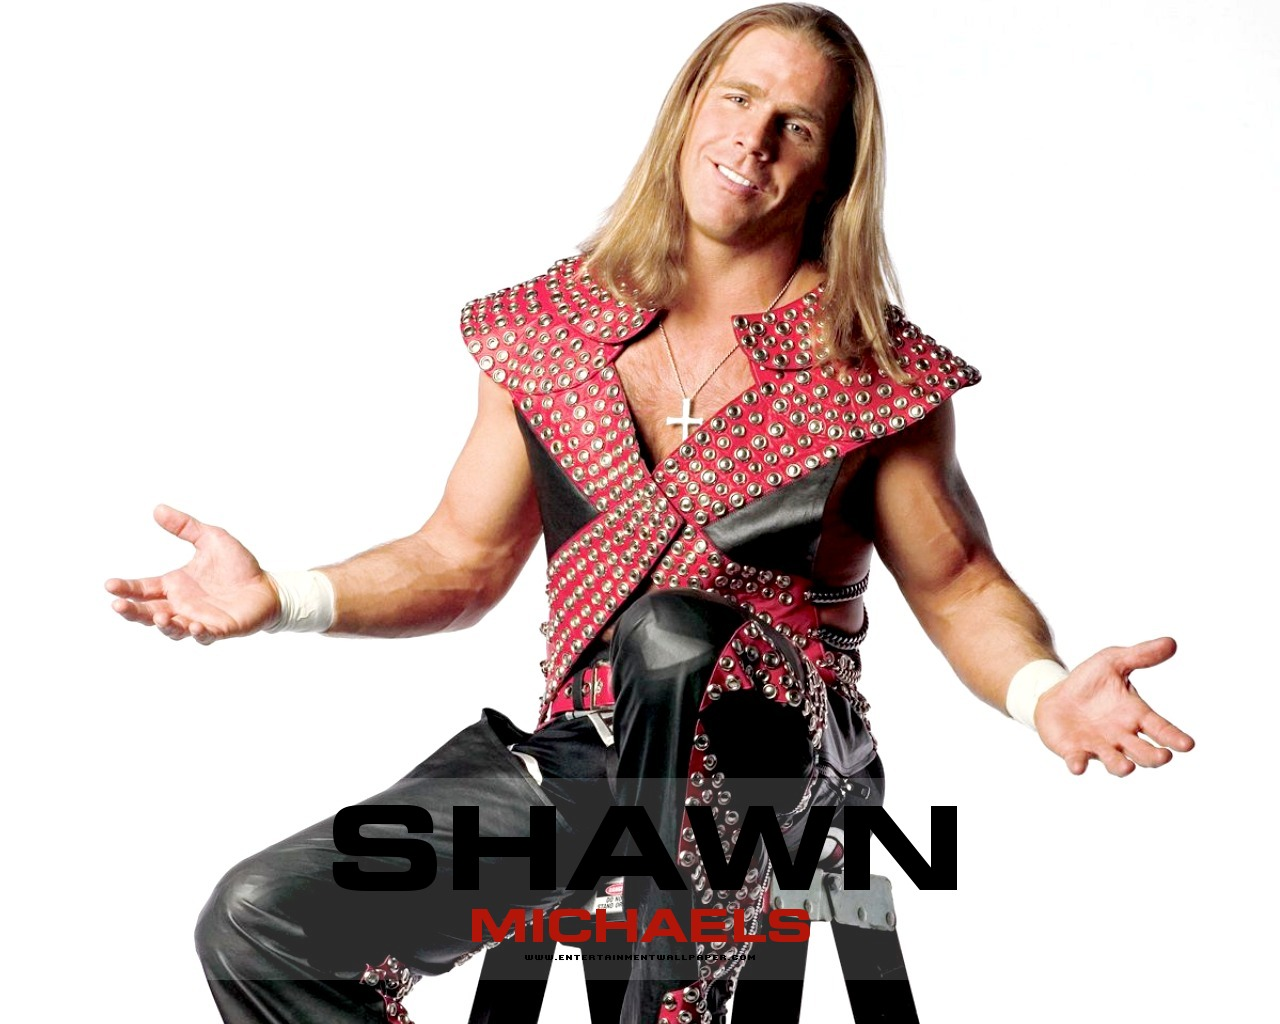 WWE WALLPAPERS Shawn Michaels Shawn Michaels Wallpapers Shawn 1280x1024